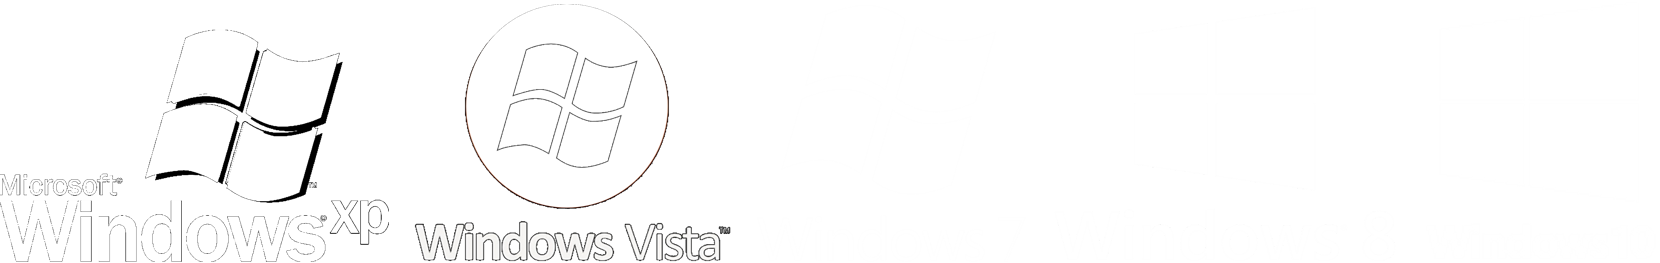 Compatibile con: Windows XP, Windows Vista, Windows 7, Windows 8, Windows 10